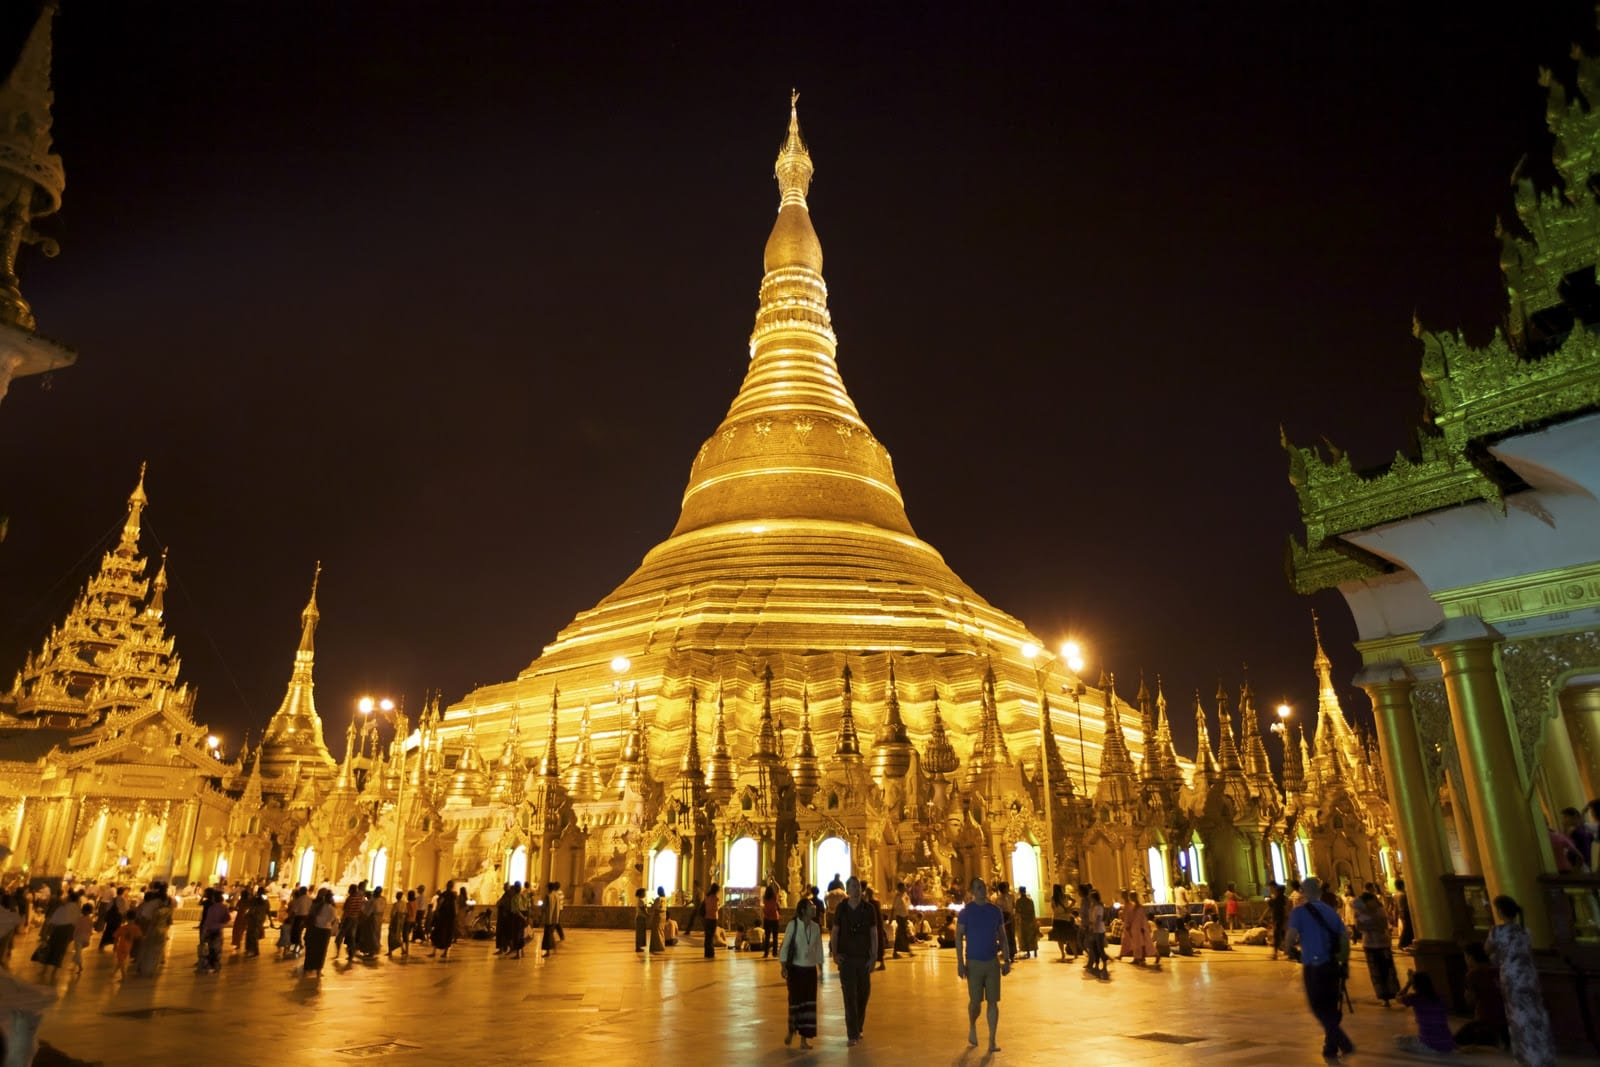 Good place to admire the beauty of Shwedagon